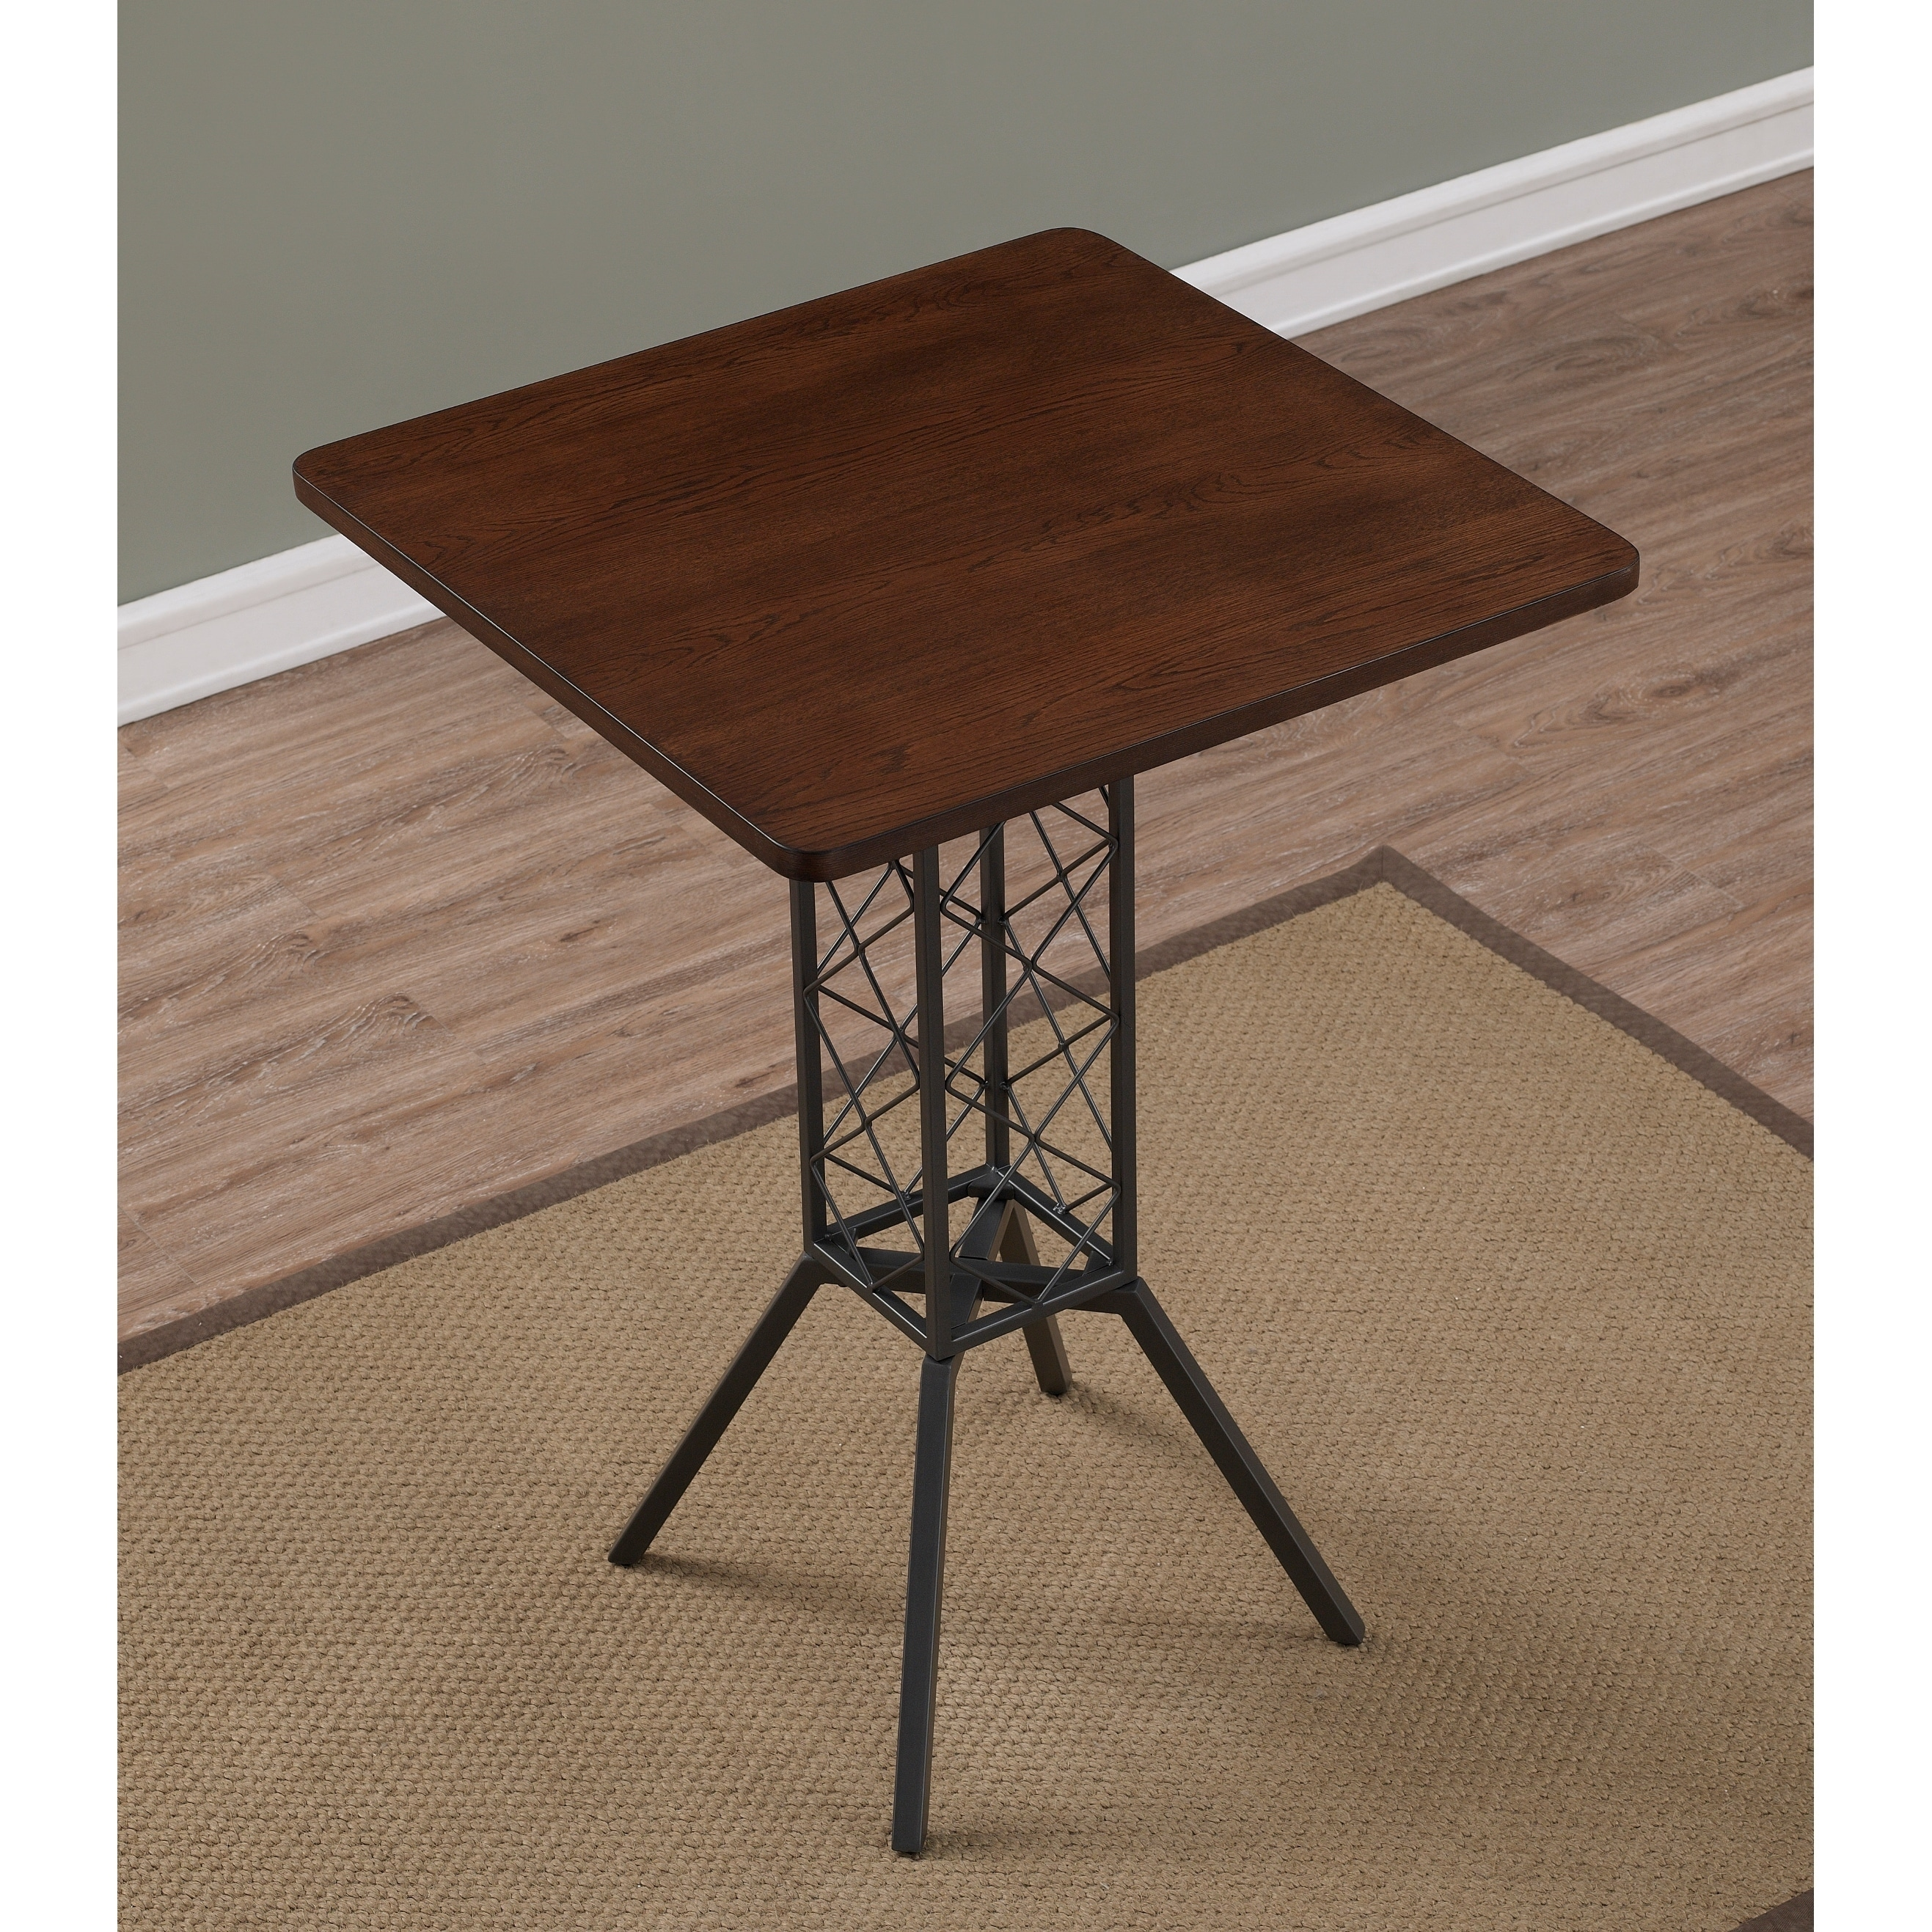 Shop Truro 36 Inch Counter Height Table By Greyson Living   Grey/Charcoal    On Sale   Free Shipping Today   Overstock.com   18525689